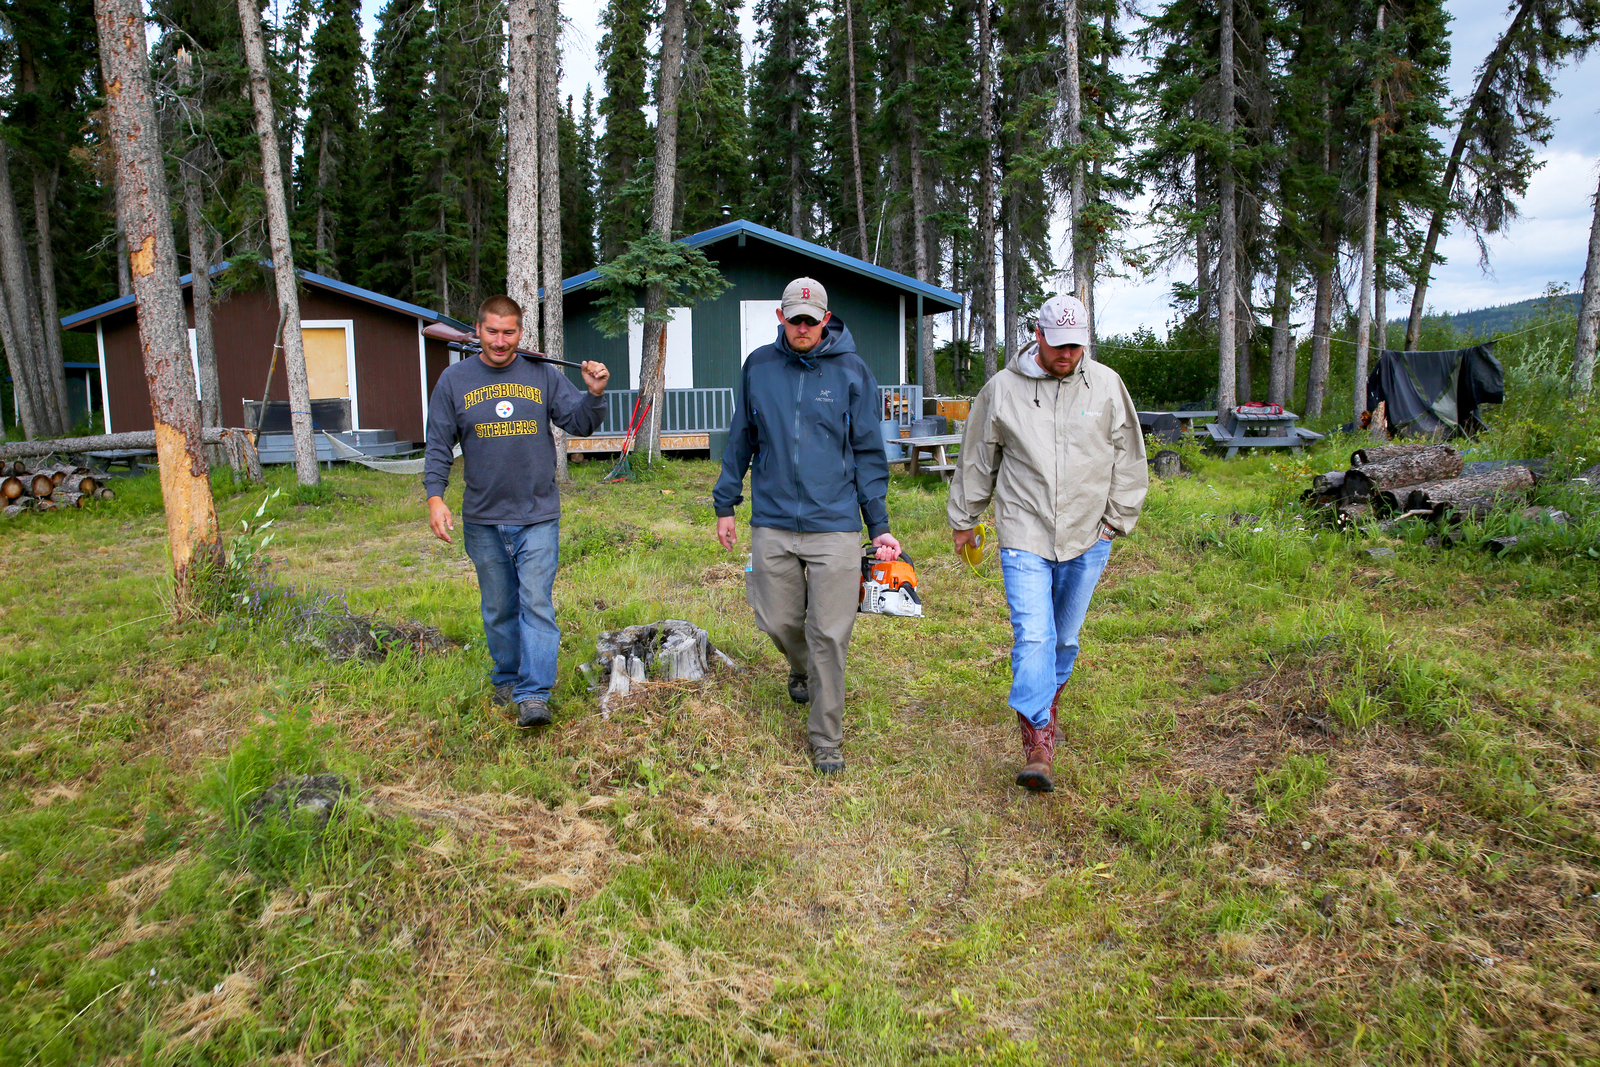 Circle, AK, July 16, 2014-- Armed with a bear gun for predators, Tanana Tribal Logistics Specialist Jack Boyle (L) and FEMA Logistics Specialists Chris Reese (C) and Brian Baker (R) retrieve chainsaws and power tools used for debris removal at this fishing camp. As subsistence hunters and fisherman, FEMA funds recovery measures at the camps damaged by severe flooding using Other Needs Assistance because this inner community depends of subsistence living for their food or sustinance. Adam DuBrowa/ FEMA